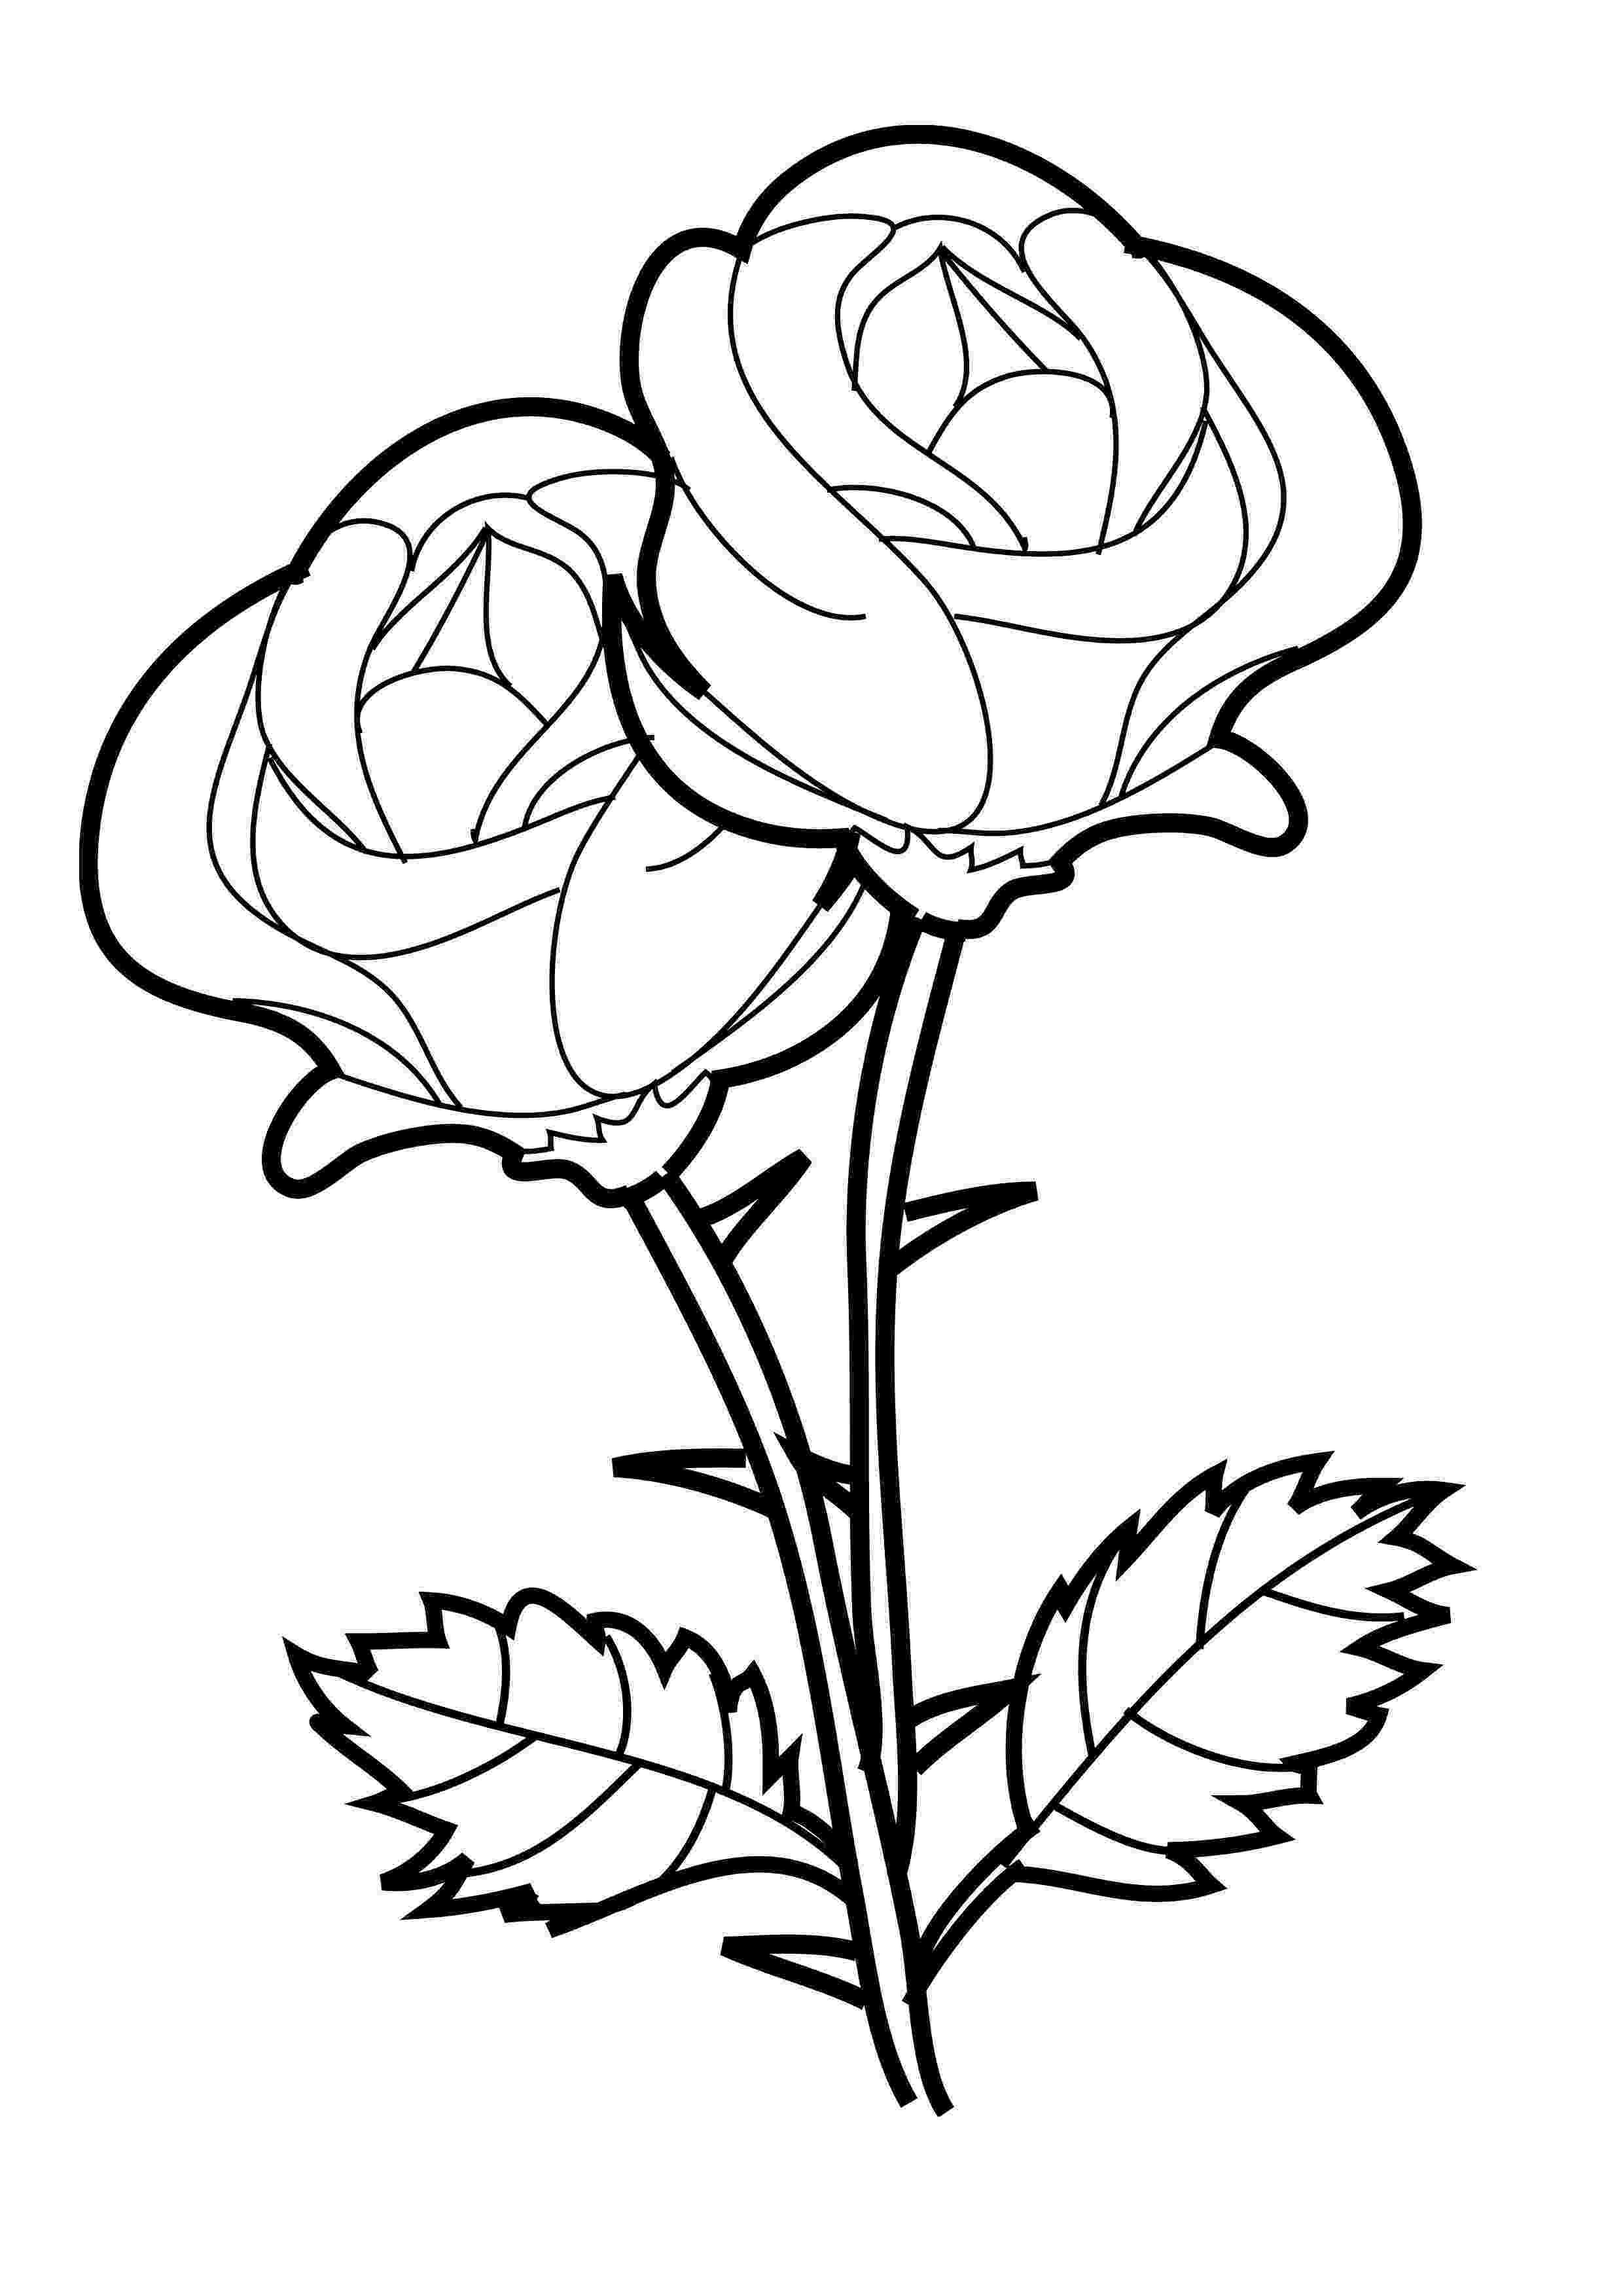 rose coloring pages for adults free printable roses coloring pages for kids for pages adults rose coloring